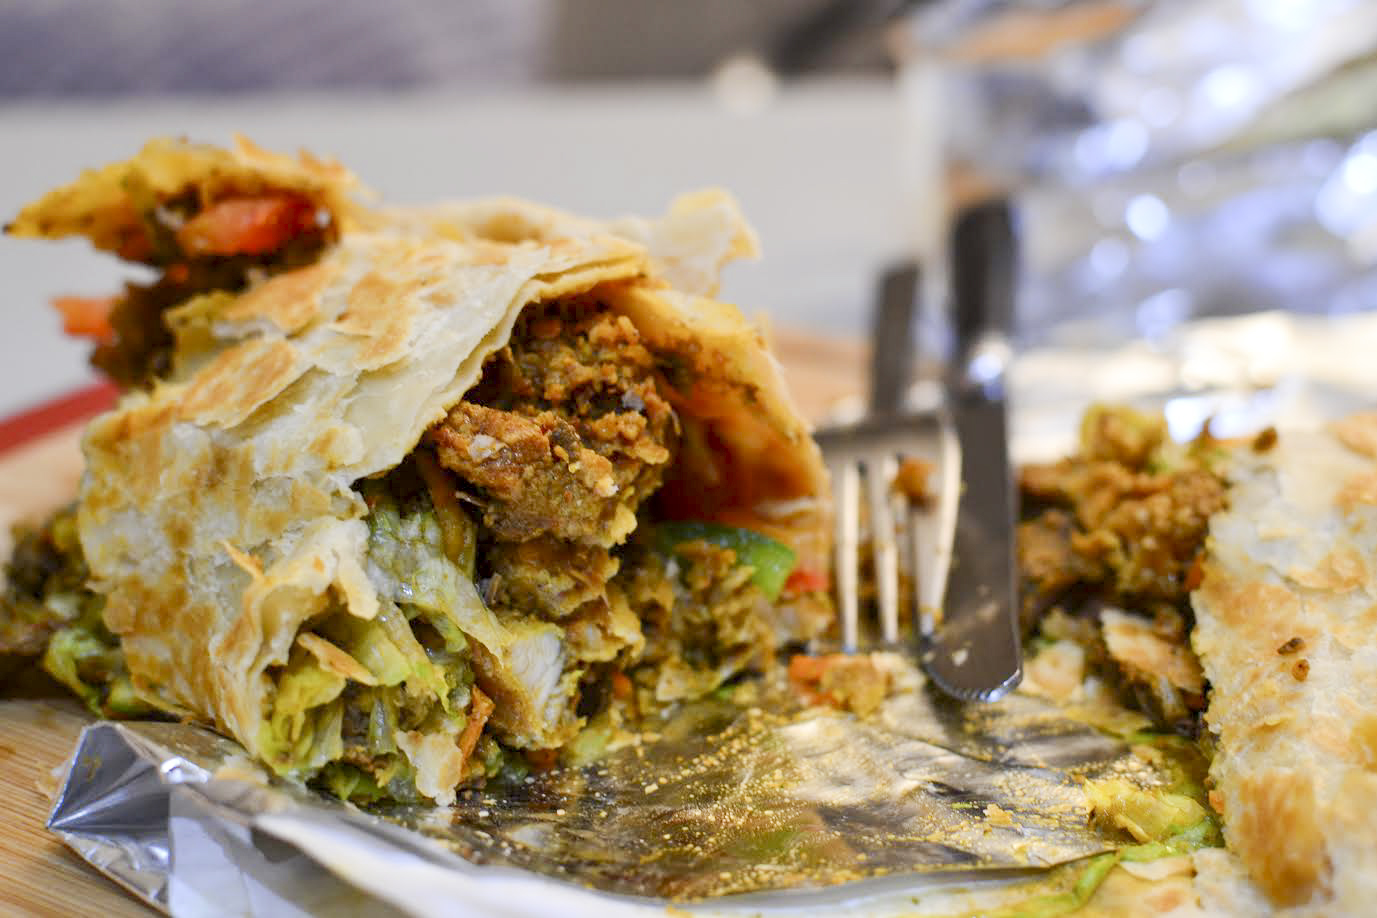 Paratha wrap with curries, Tifinbox in Aldgate